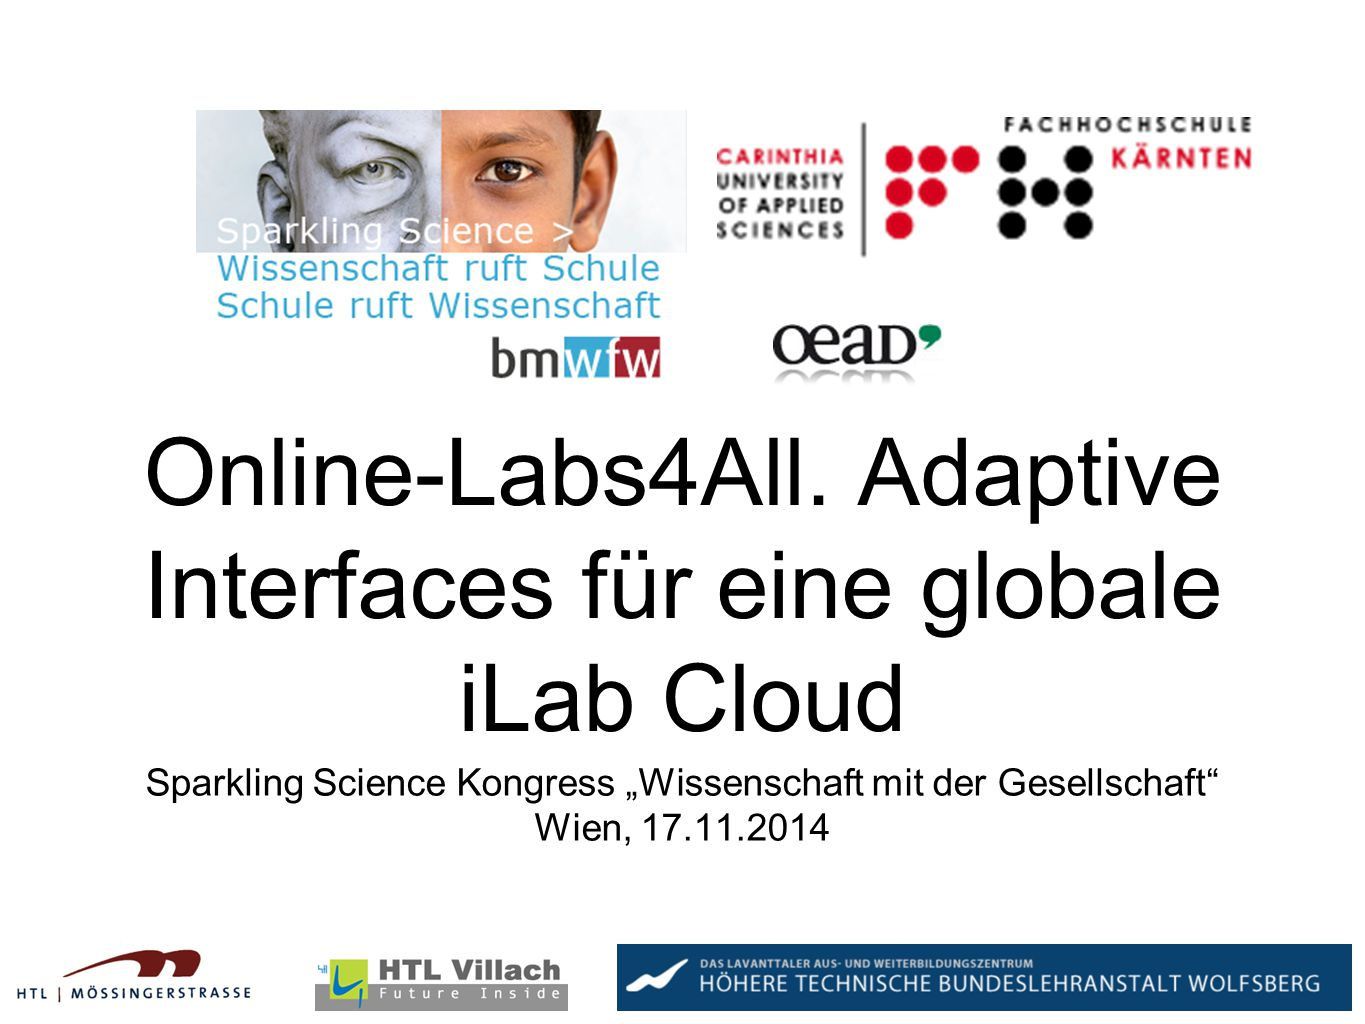 "Online-Labs4All. Adaptive Interfaces für eine globale iLab Cloud Sparkling Science Kongress ""Wissenschaft mit der Gesellschaft"" Wien, 17.11.2014"